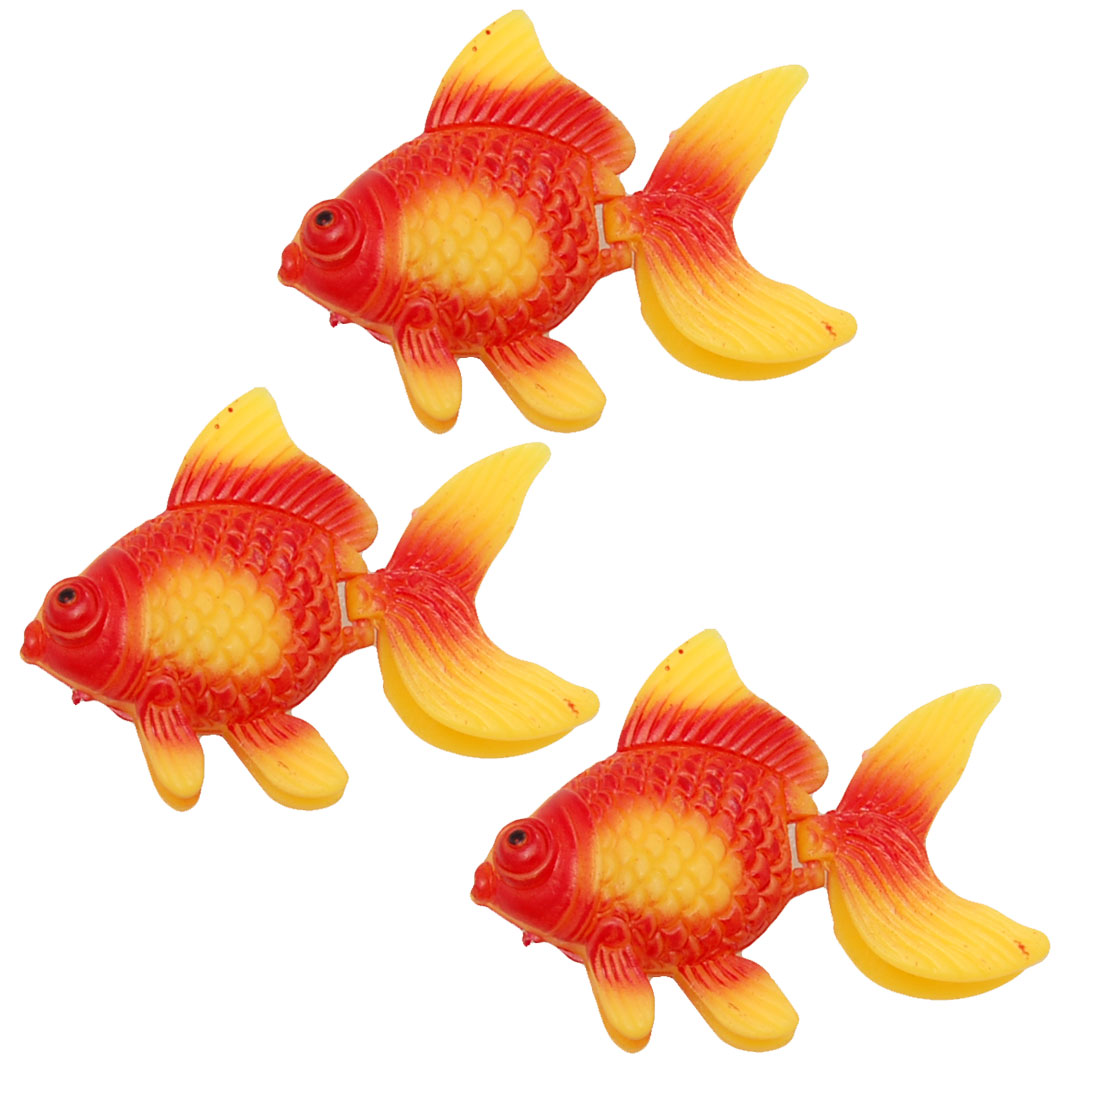 Aquarium Fish Tank Oranment Vividly Goldfish Decor